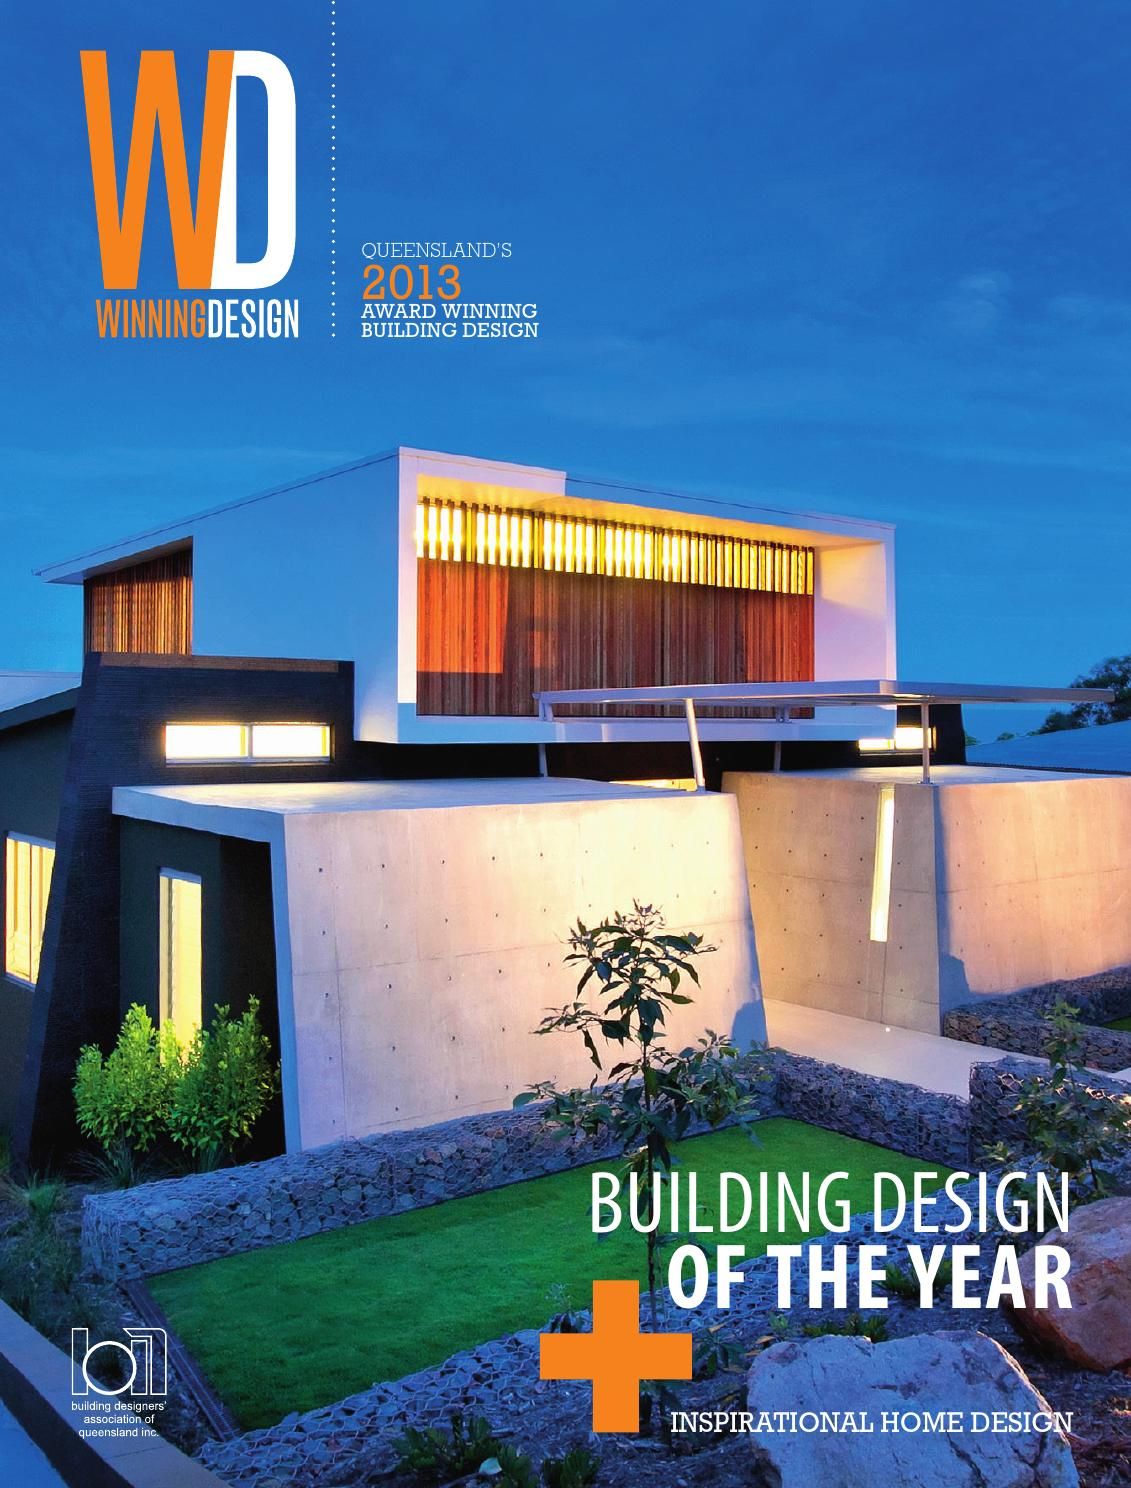 2013 bdaq winning design queensland by building designers 2013 bdaq winning design queensland by building designers association of queensland issuu